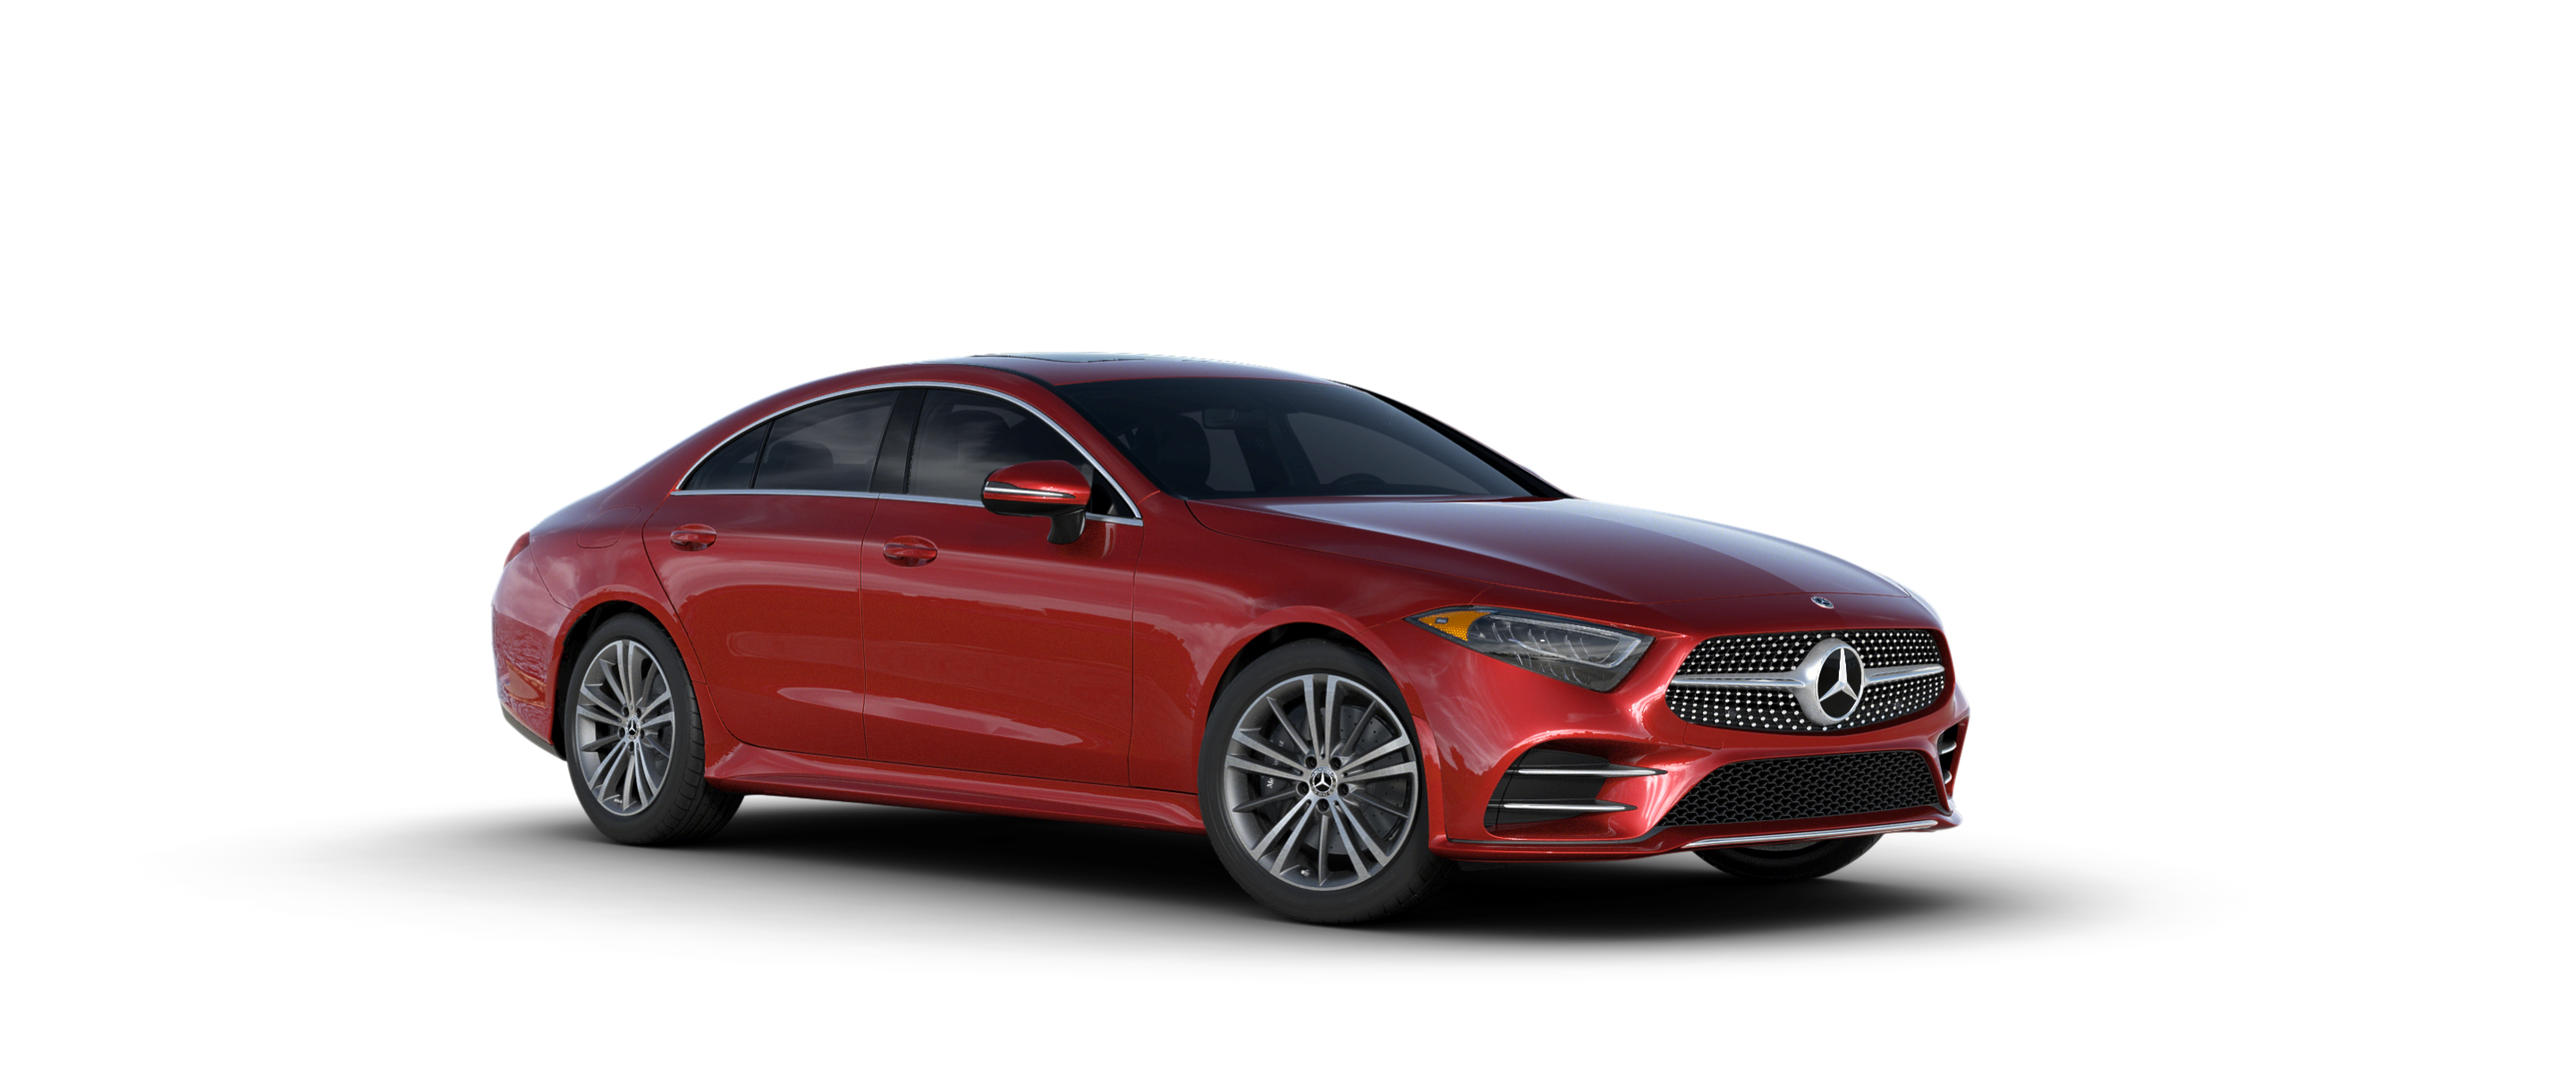 CLS 450 image